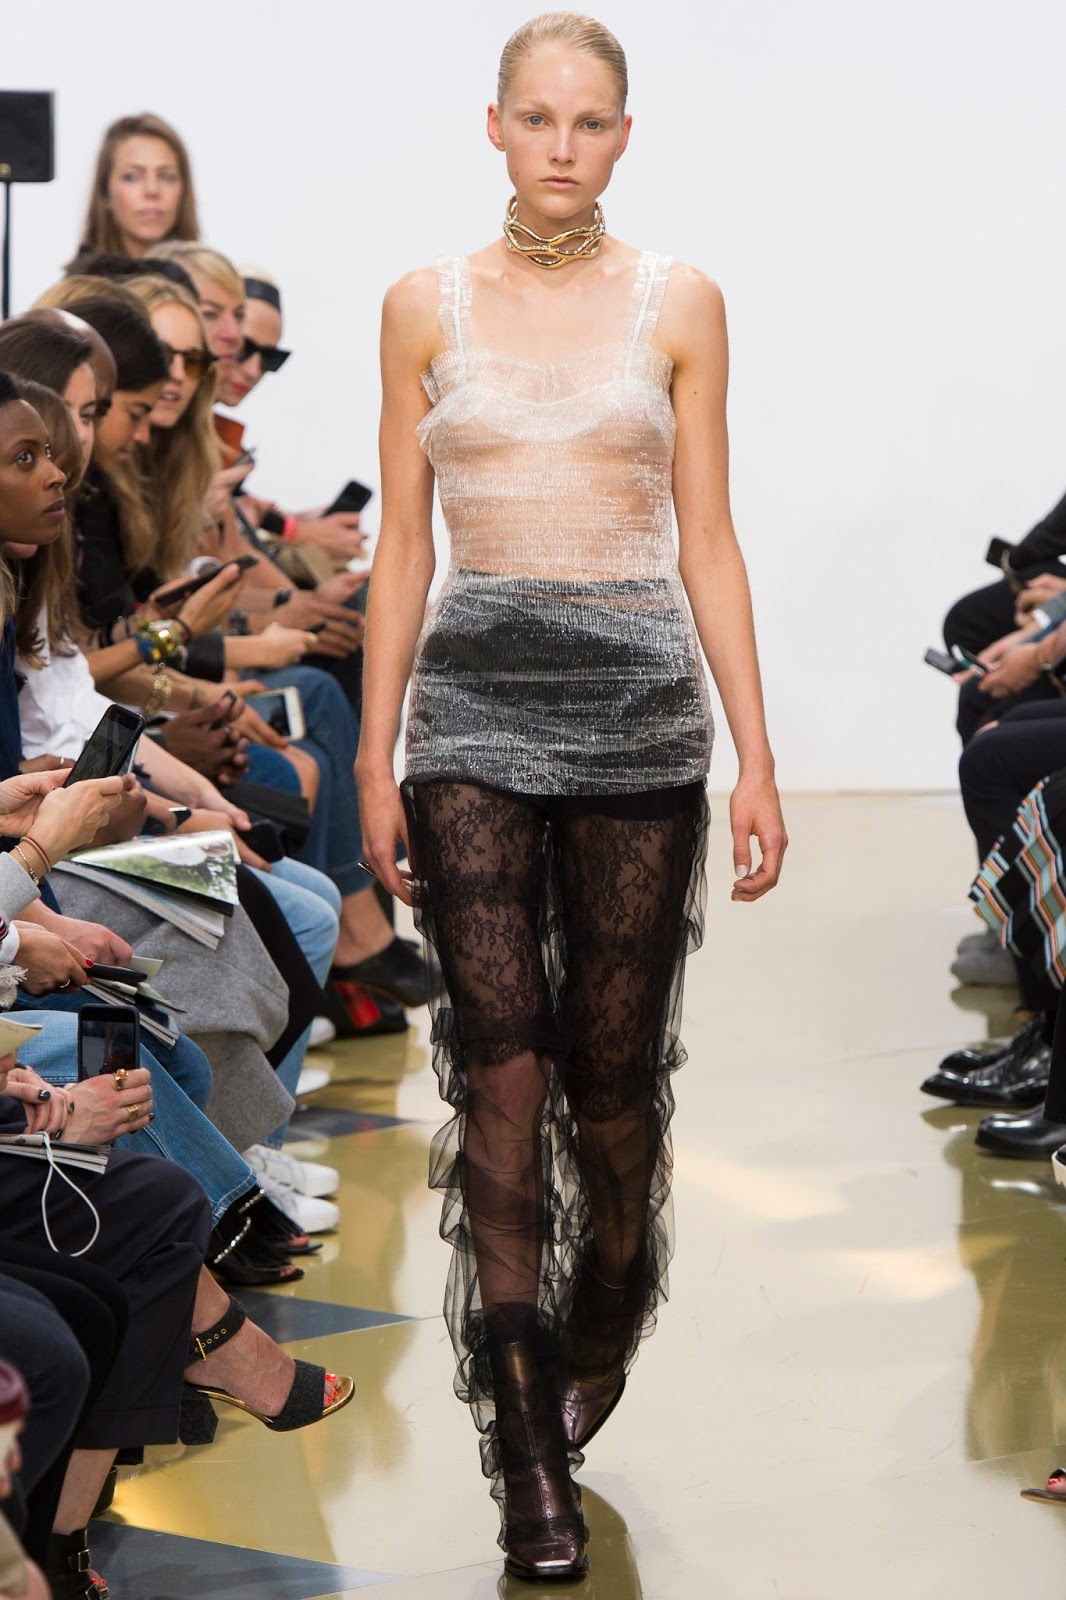 lfw spring 2016, London Fashion Week, sheer, catwalk, model